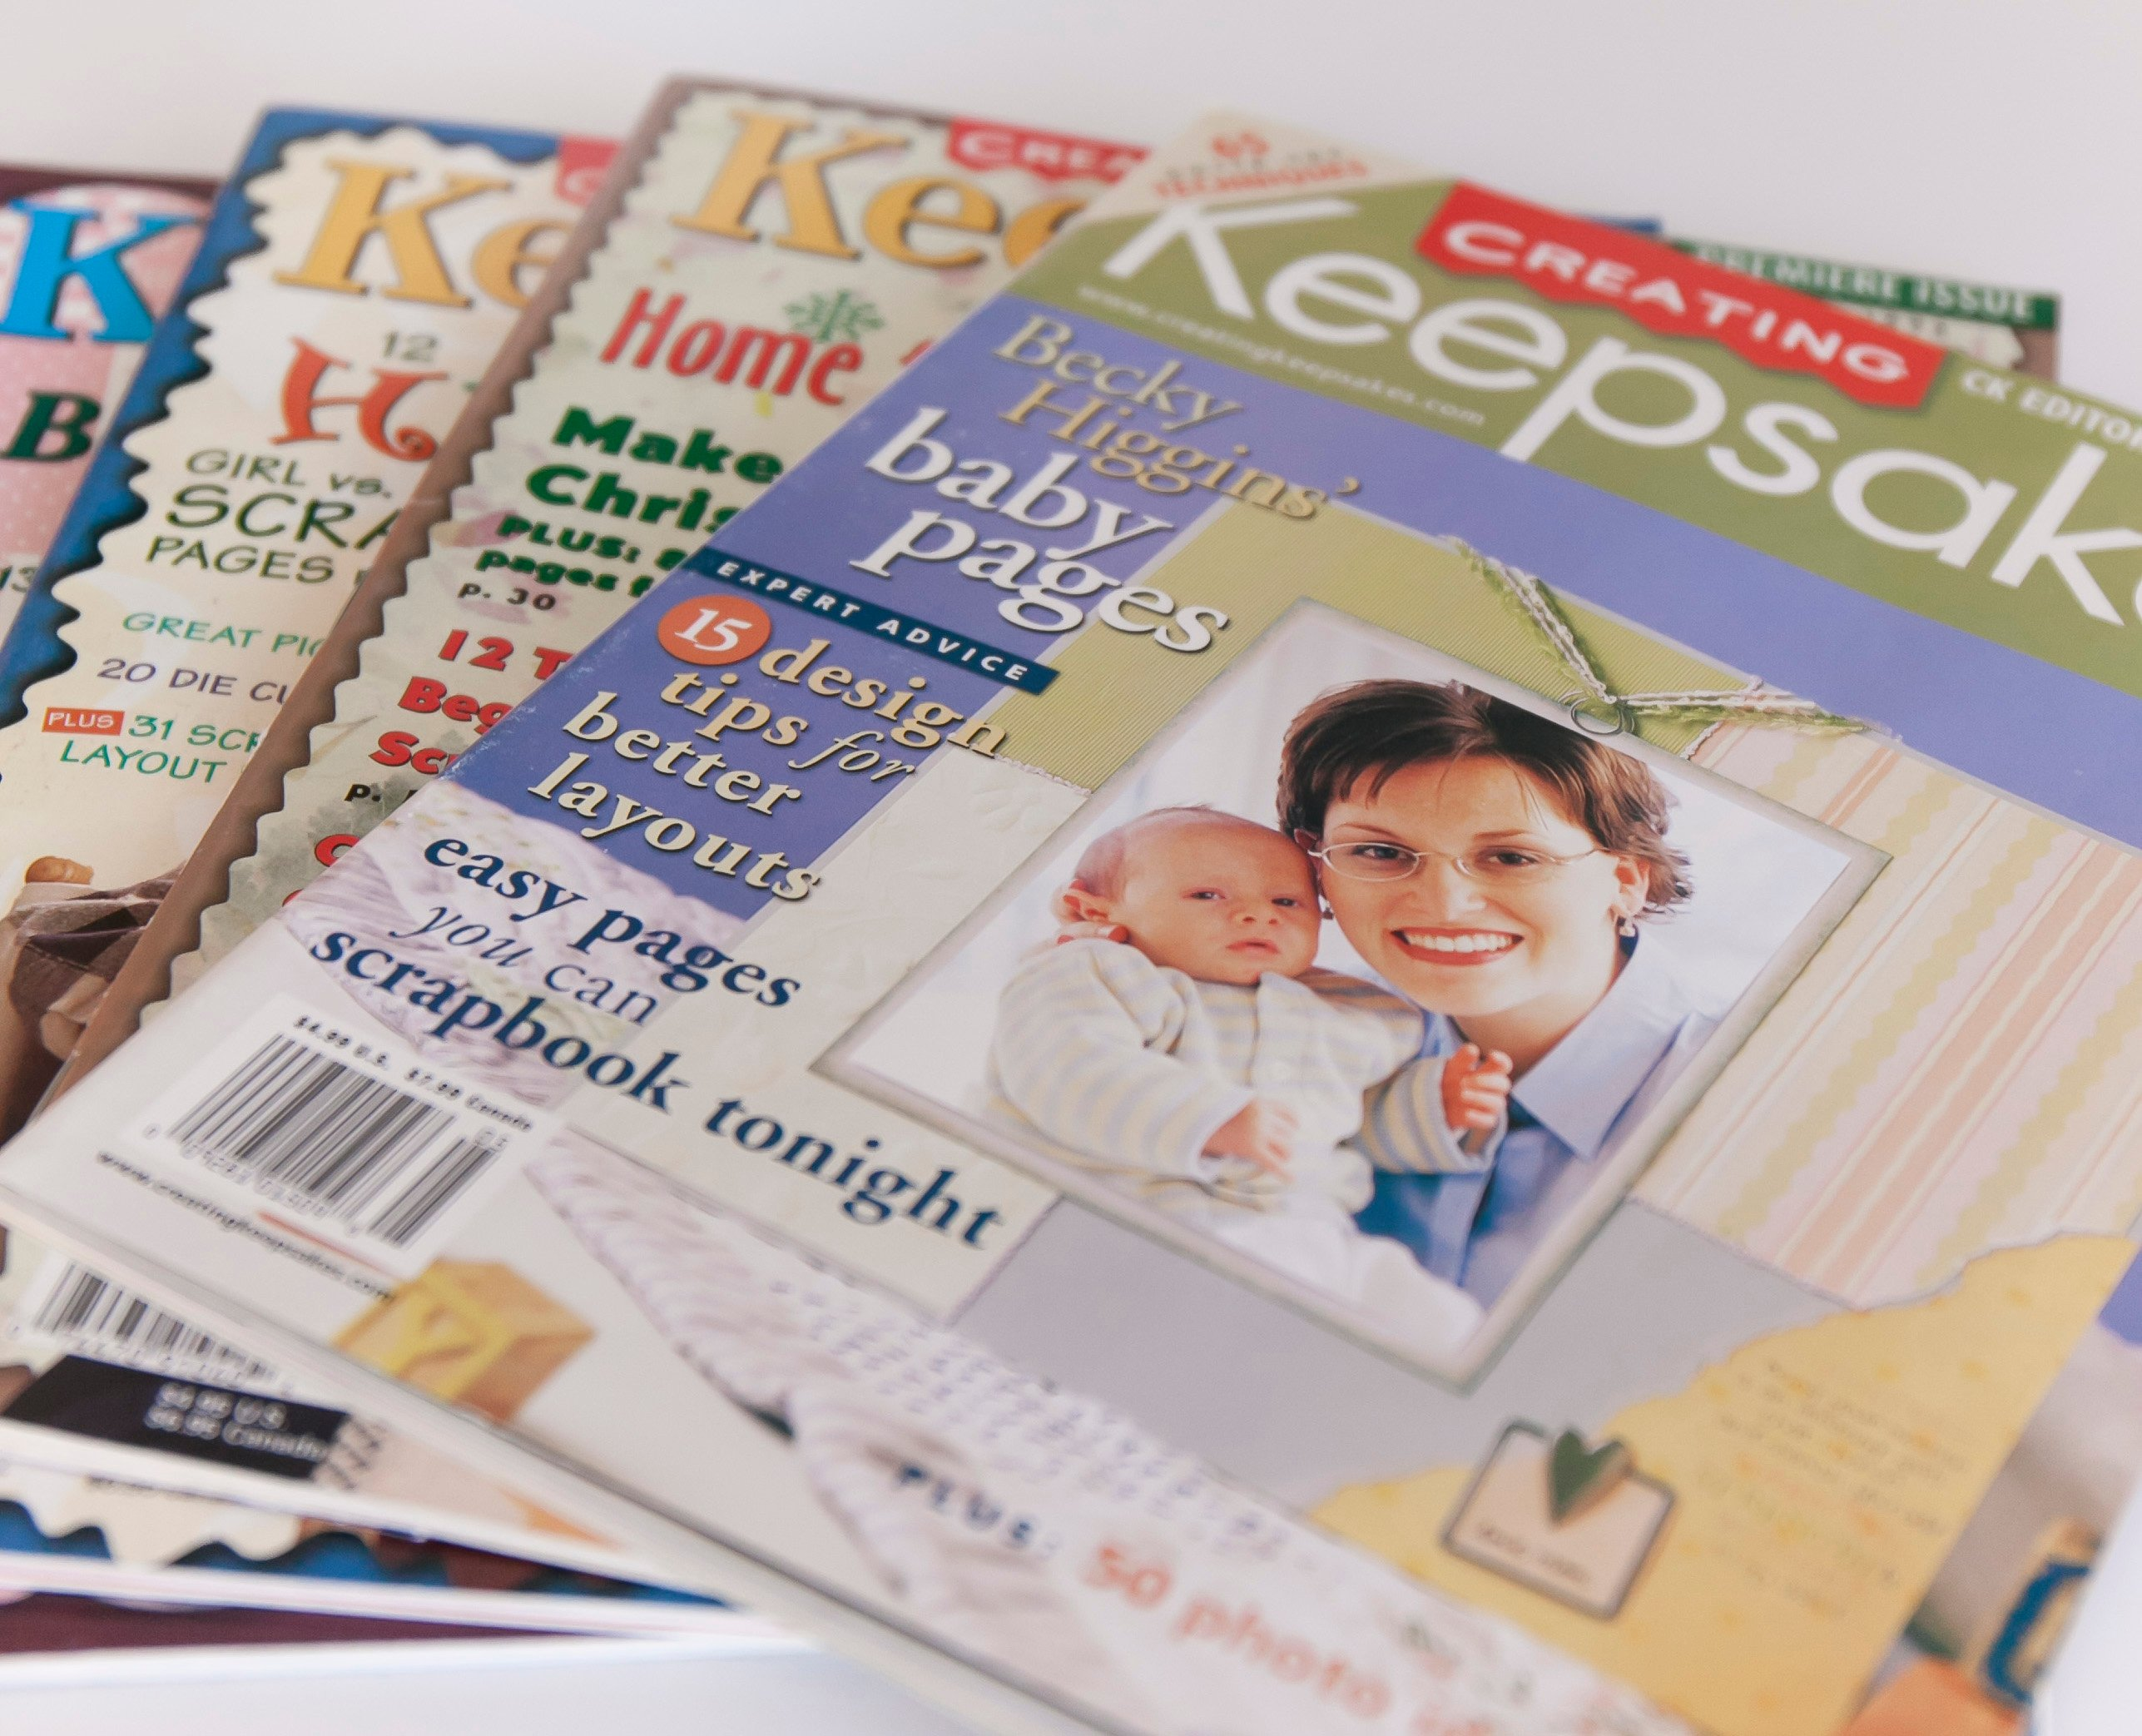 How to scrapbook magazine articles - Early Issues Of Creating Keepsakes Magazine Top Issue Features Becky Higgins